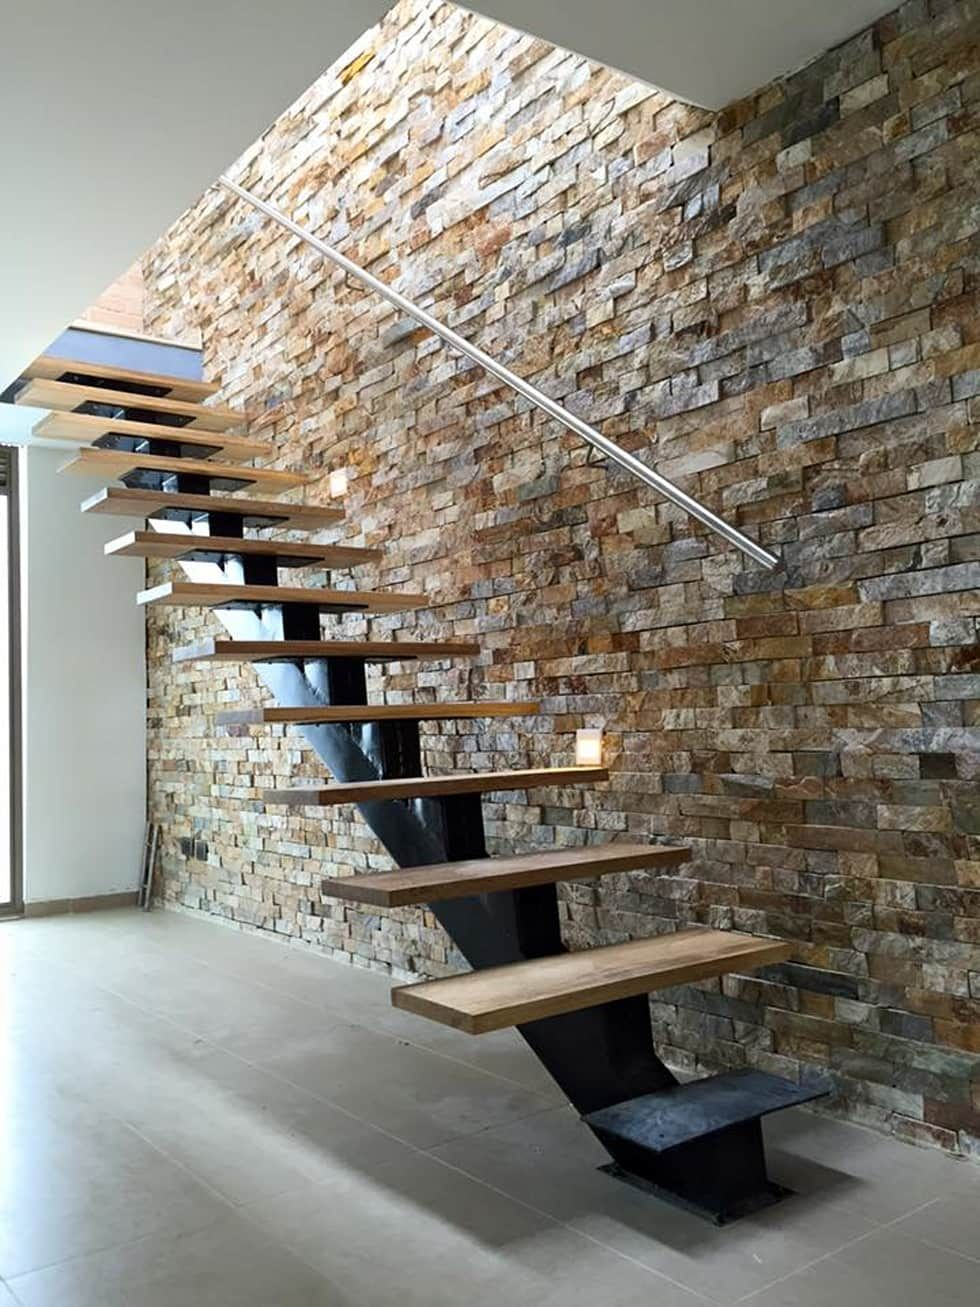 Im genes de decoraci n y dise o de interiores pinterest for Escaleras economicas para interiores